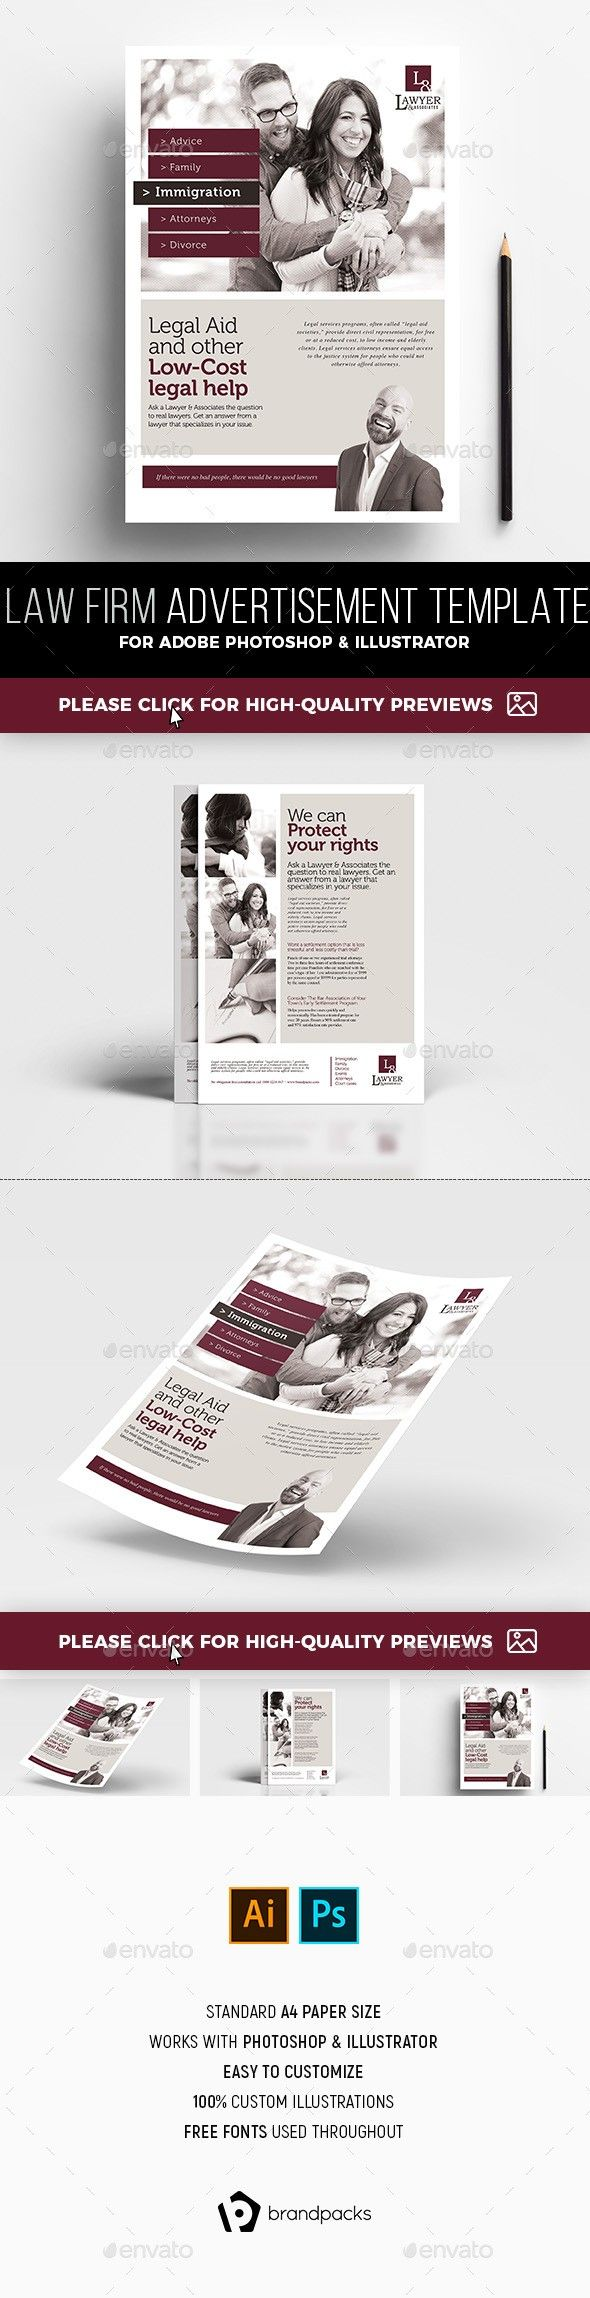 a4, advert, advertisement template, advocate, ai, attorney